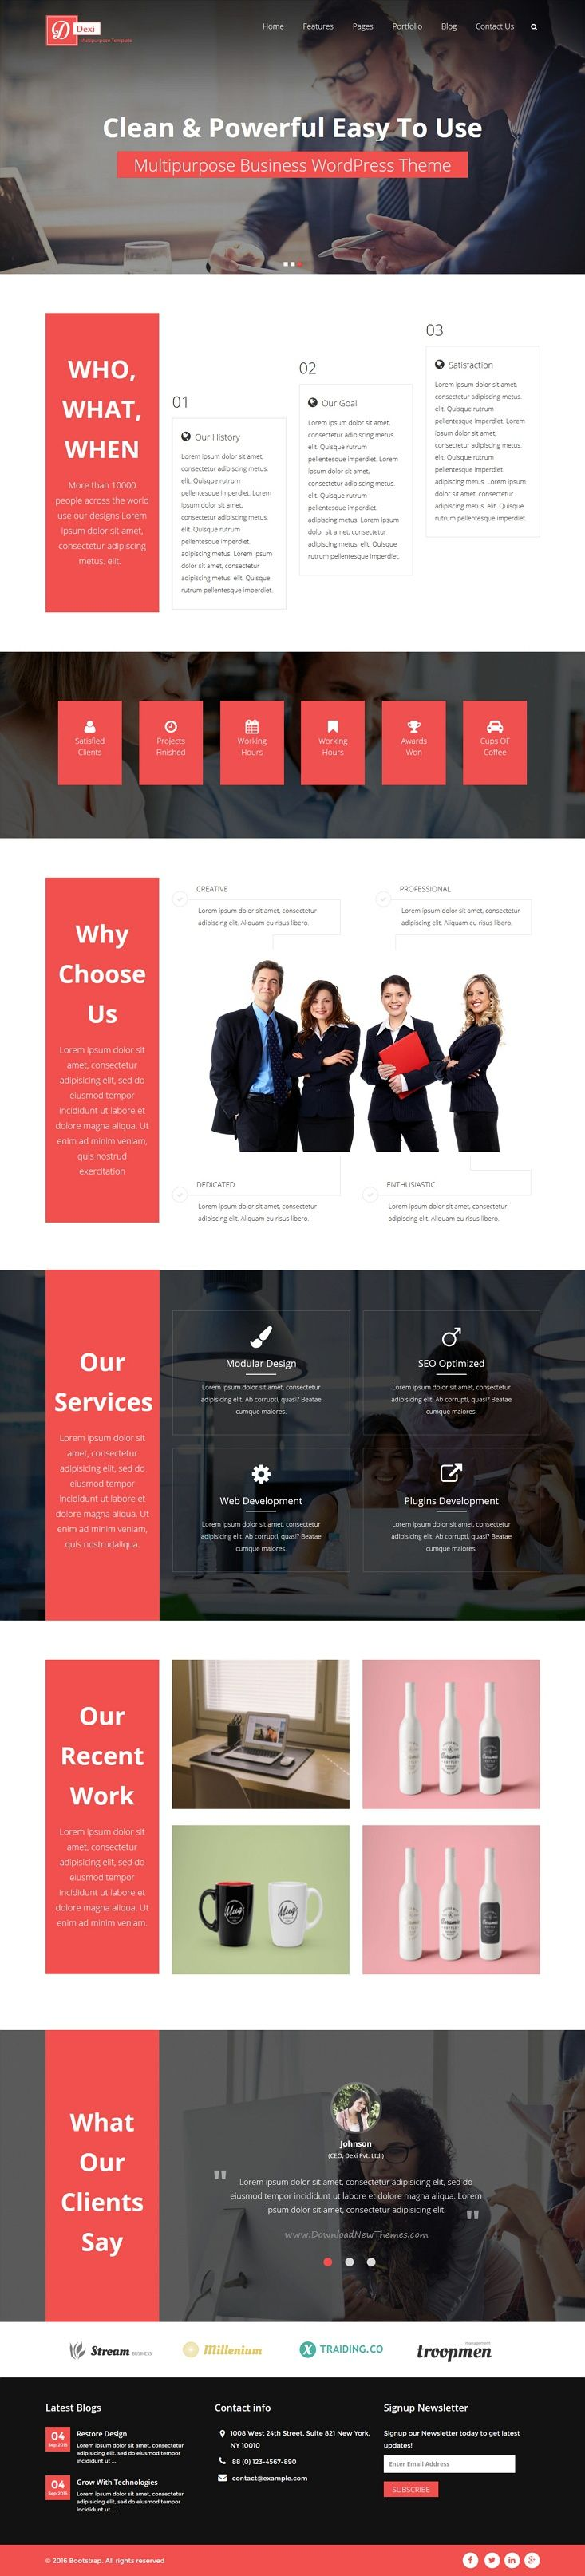 Dexi is a wonderful responsive #WordPress #theme for #webdesign business portfolio website with packed with complete solution for about us, blog, pricing, contact, coming soon, single portfolio page, single blog pages & multi column pages download now➩ https://themeforest.net/item/dexi-business-portfolio-wordpress-theme/13272309?ref=Datasata